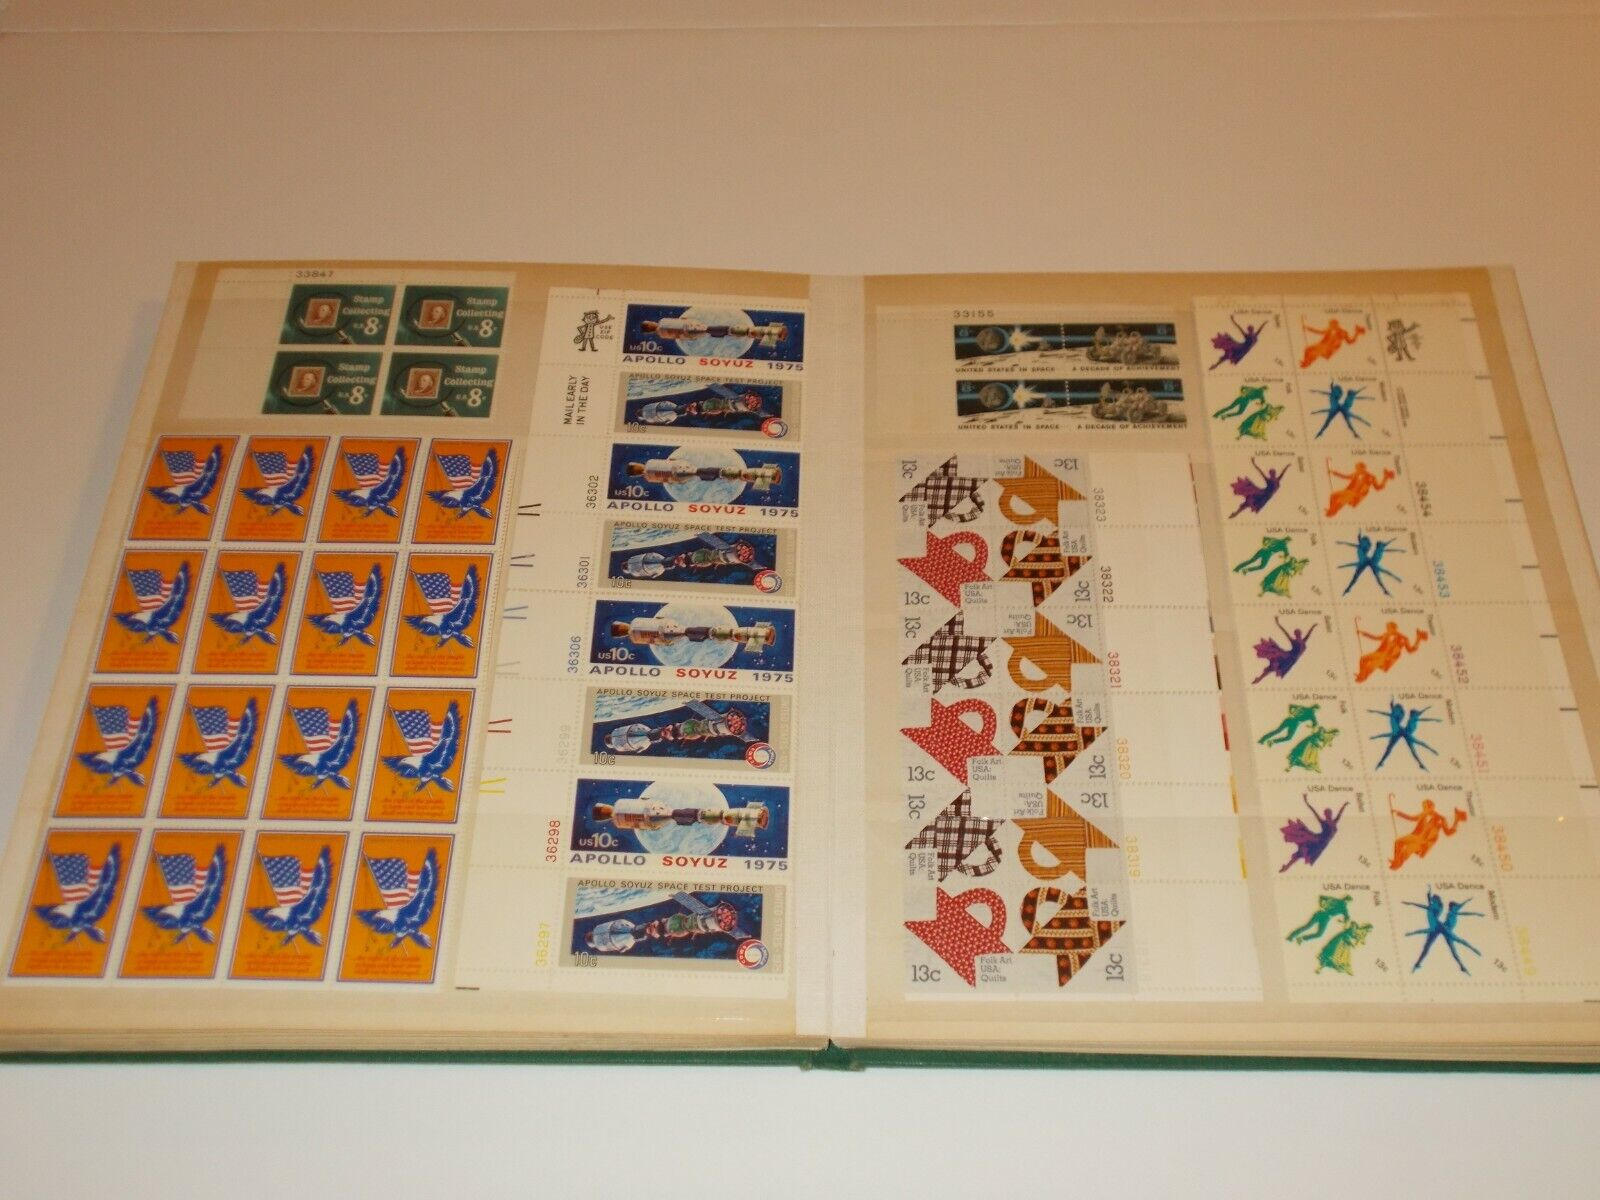 Leuchtturm/Lighthouse German Stamp Book With Mint/UNused Cond. US Postage Stamps - $99.99